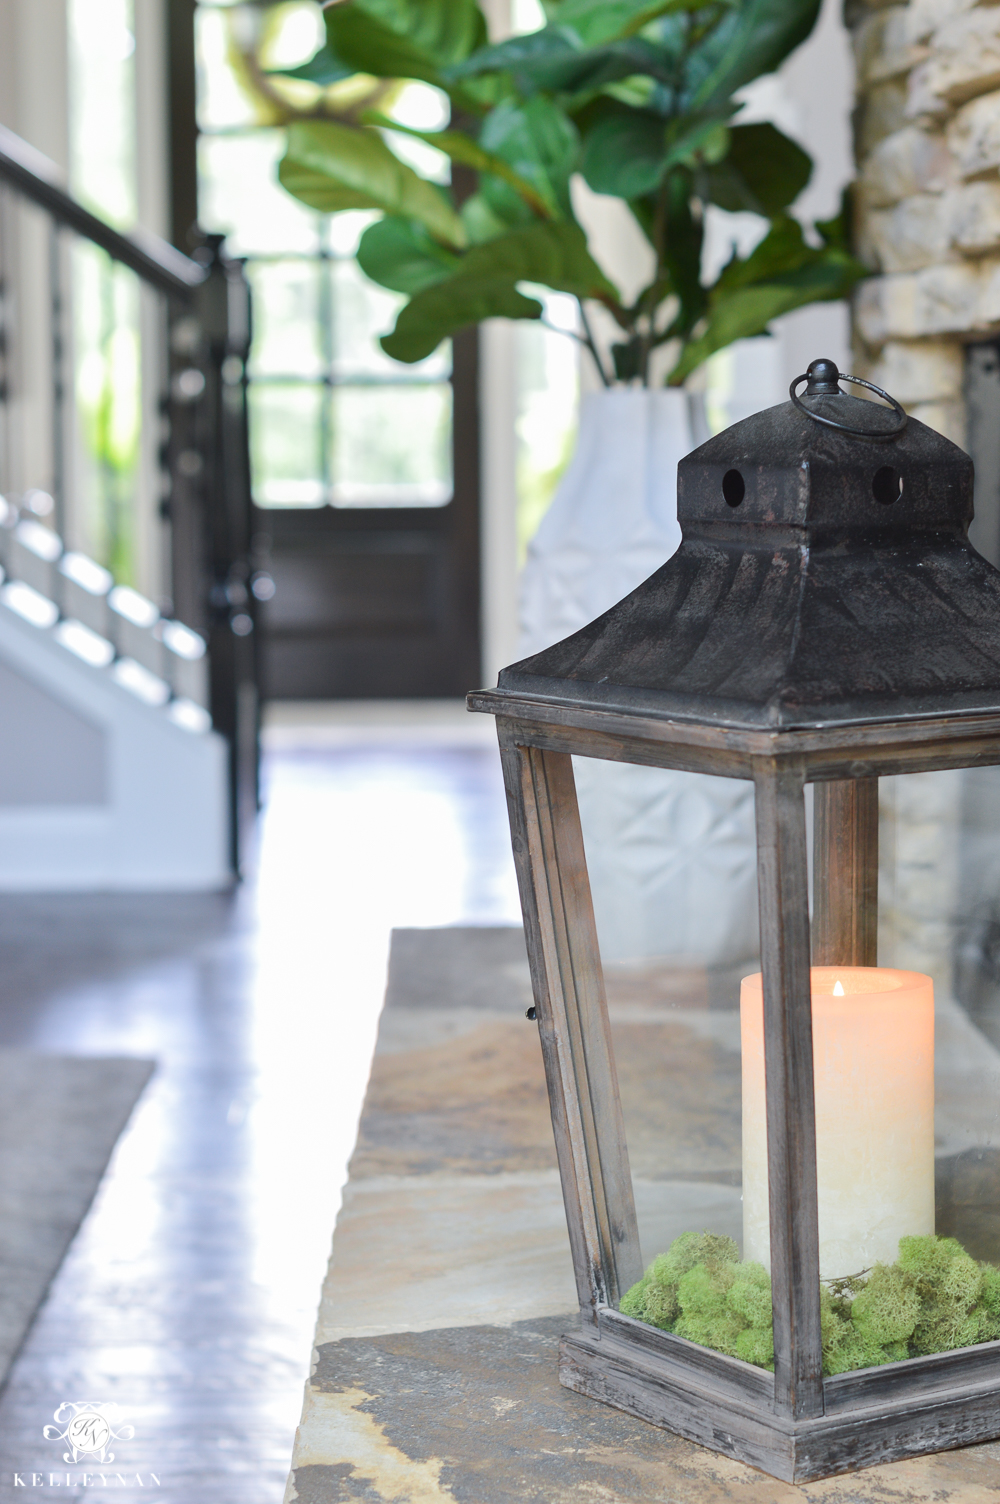 Shades of Summer Home Tour with Neutrals and Naturals- Lantern on fireplace hearth with moss